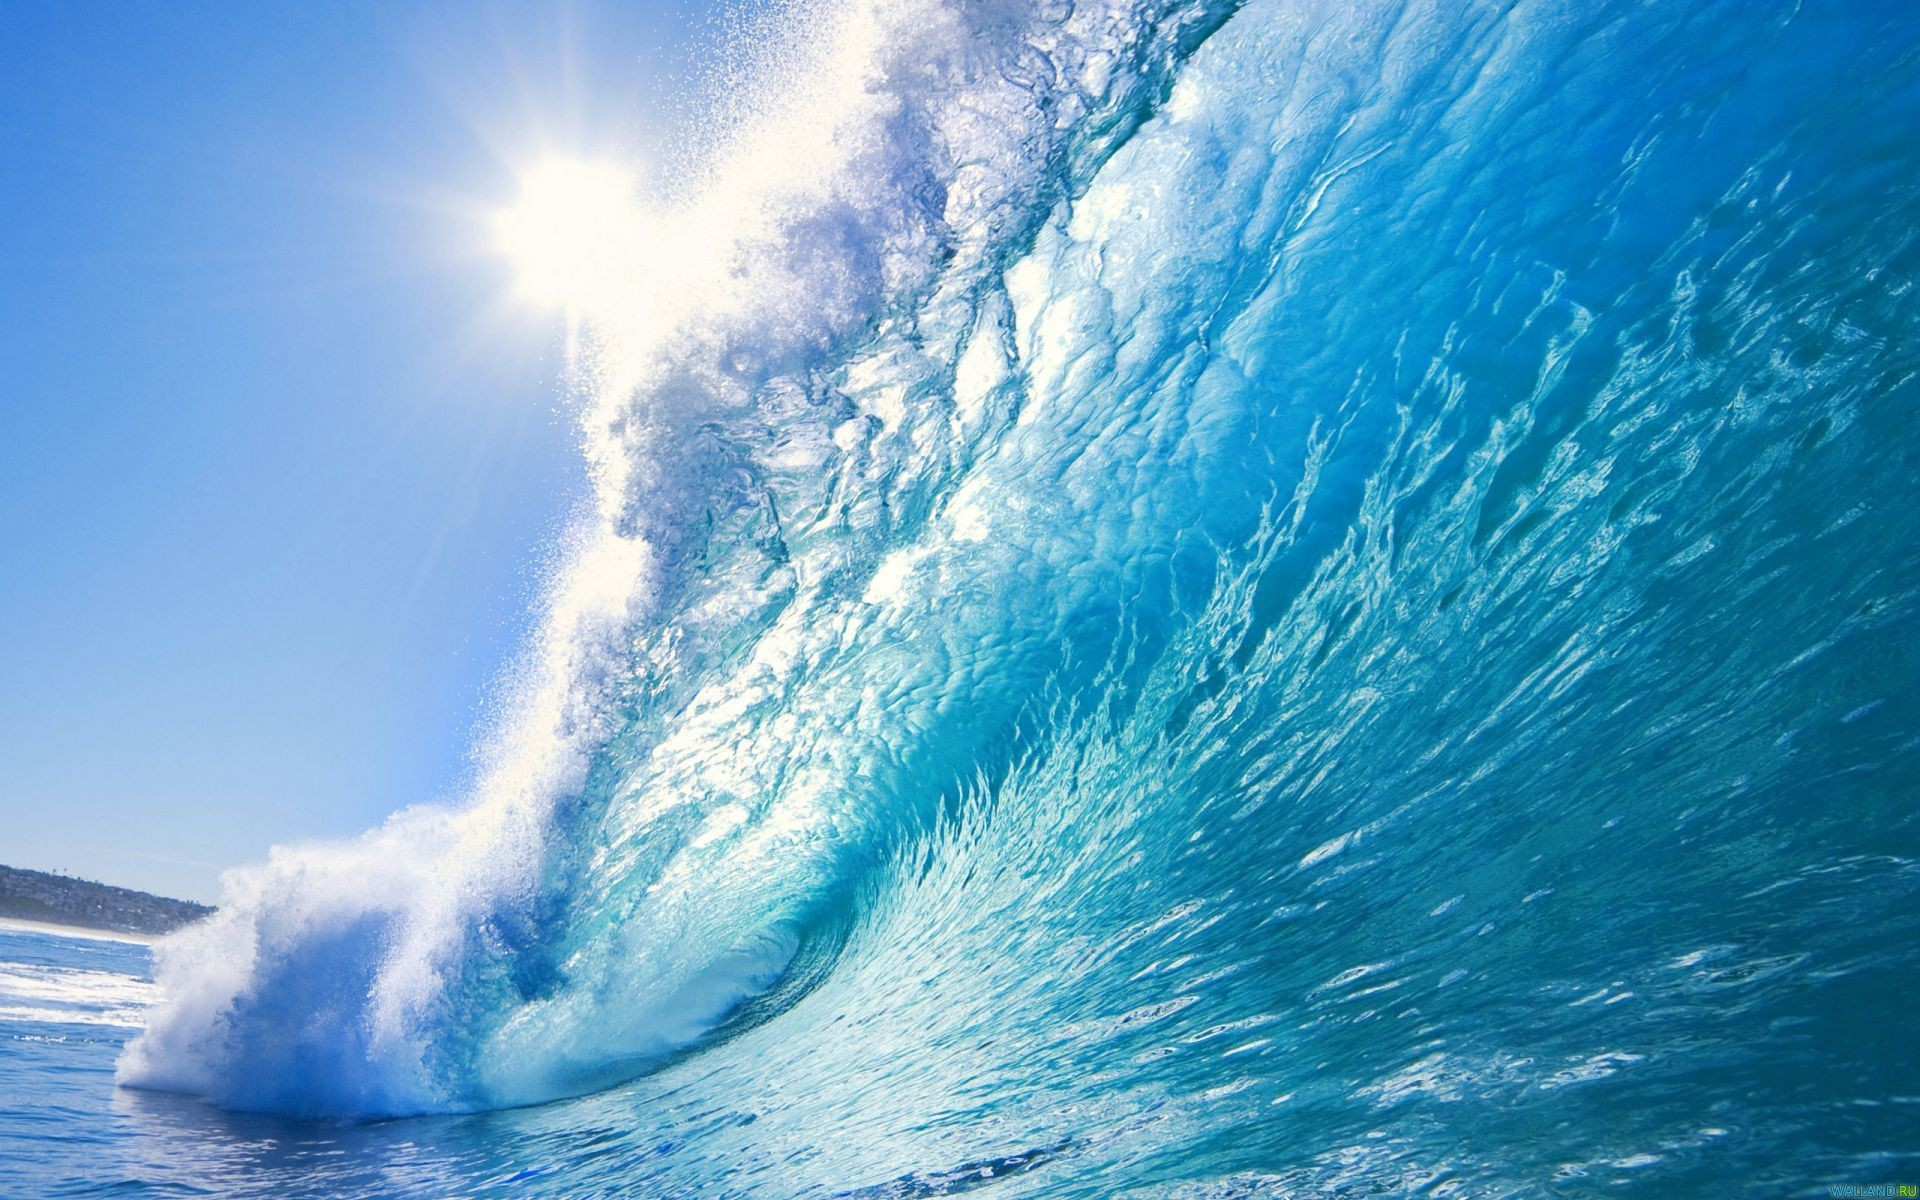 Beautiful Ocean Wave Wallpaper